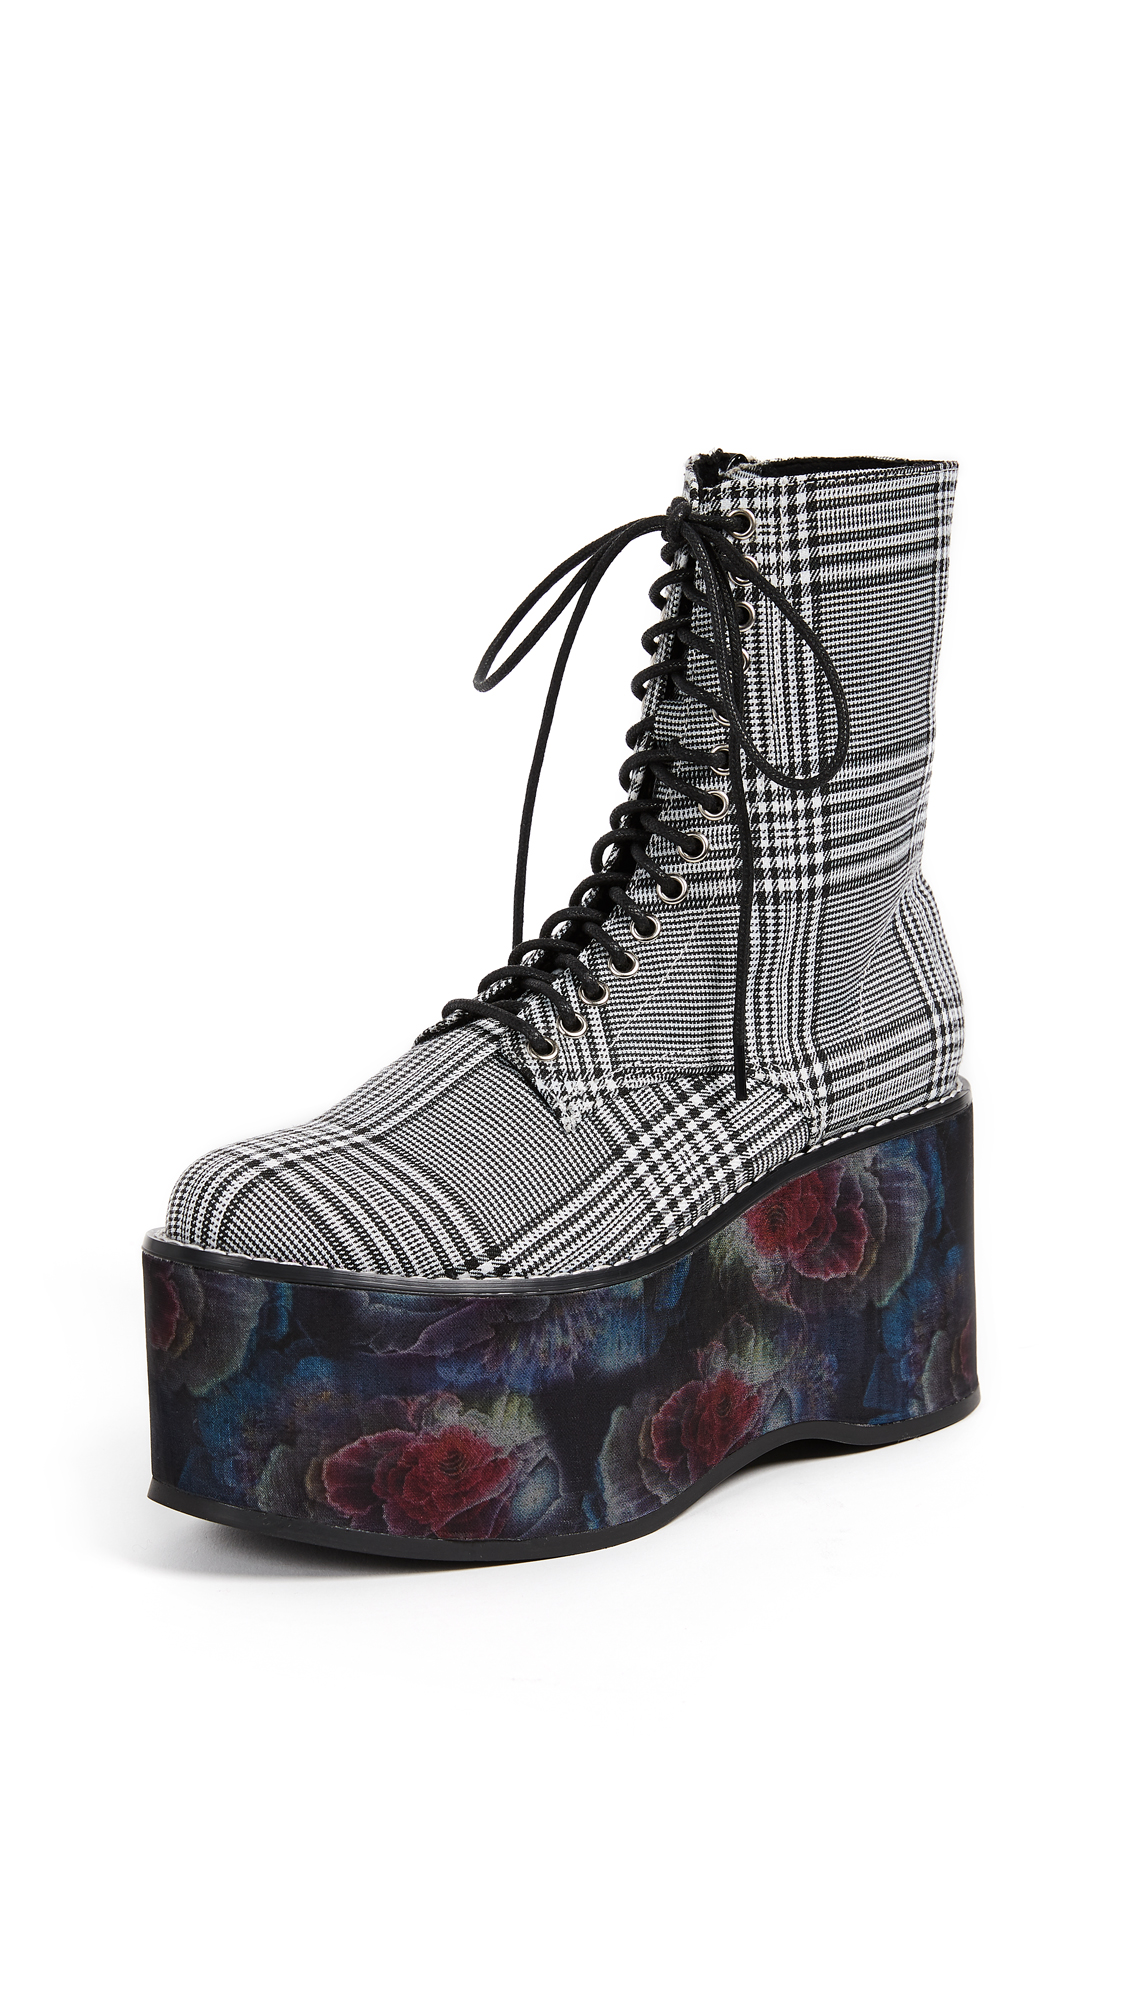 Jeffrey Campbell Bonfire Combat Boots - Black/White